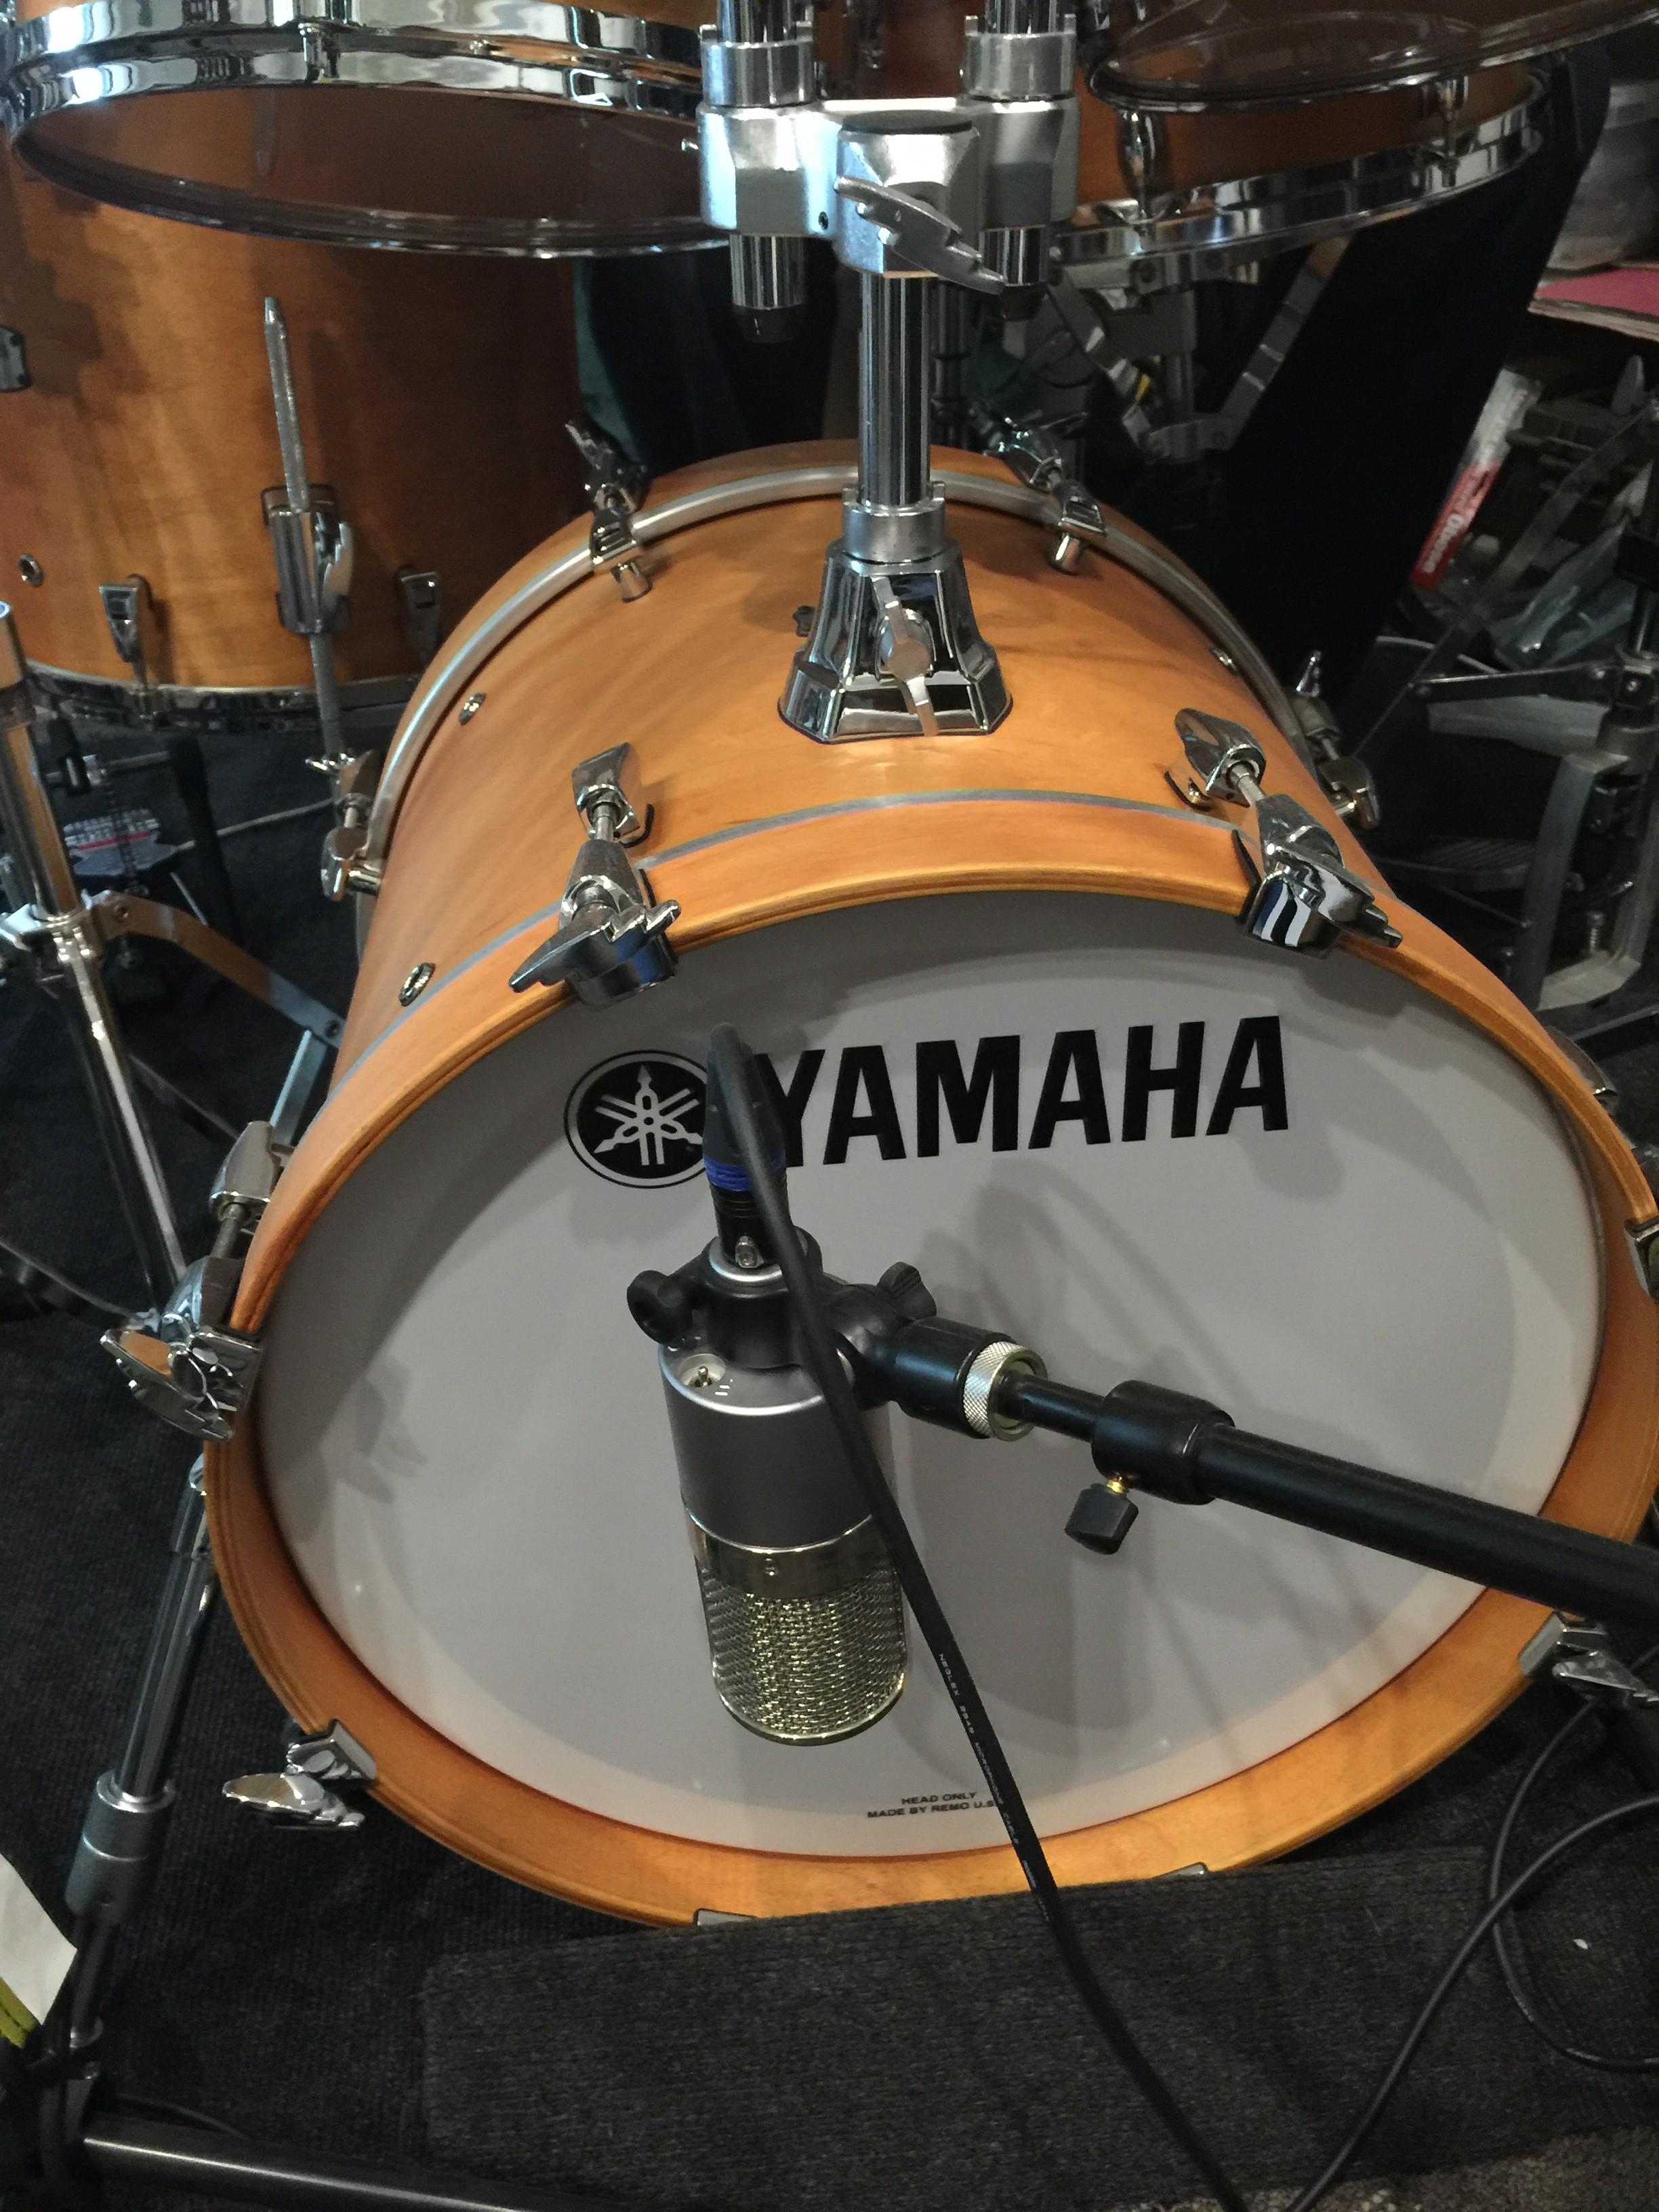 Steve Schaeffer's beautiful Yamaha kit